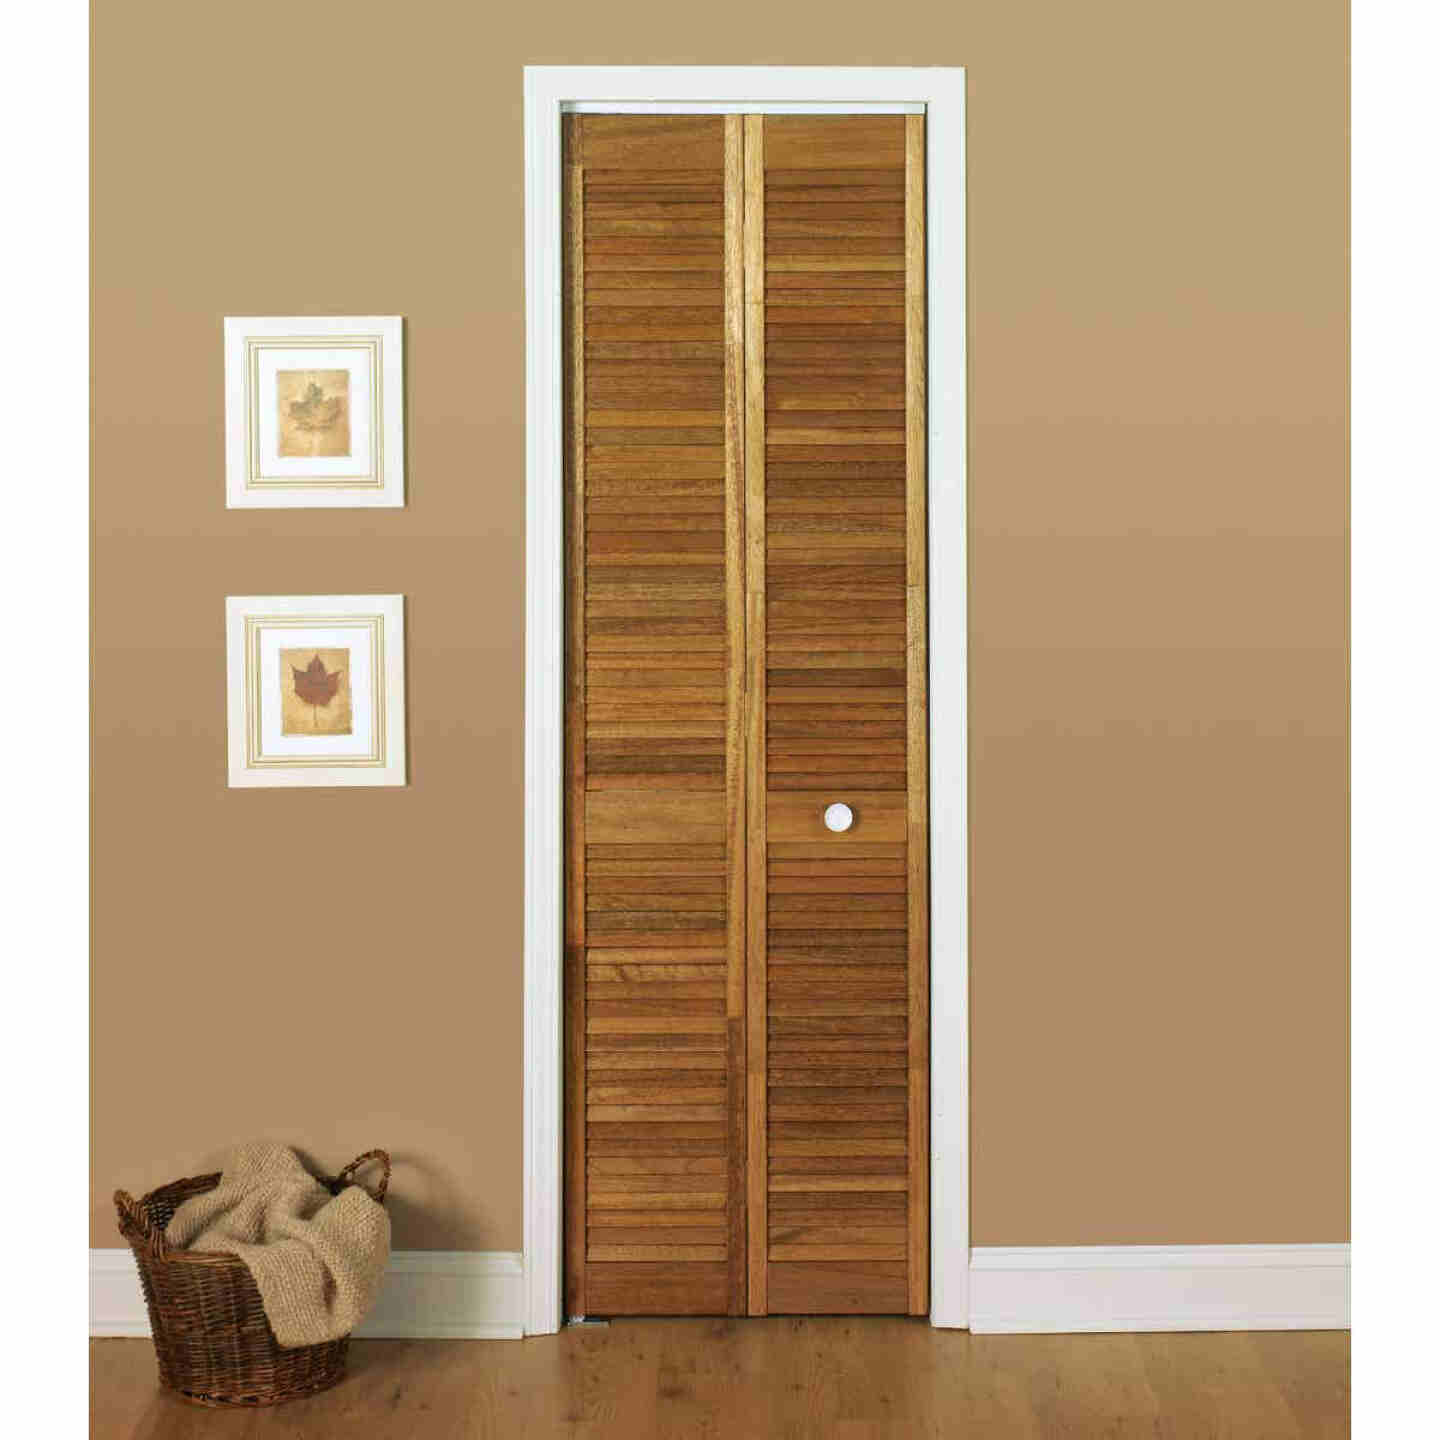 Jeld Wen 24 In. W. x 80 In. H. Pine Louver/Louver Natural Color Bifold Door Image 3